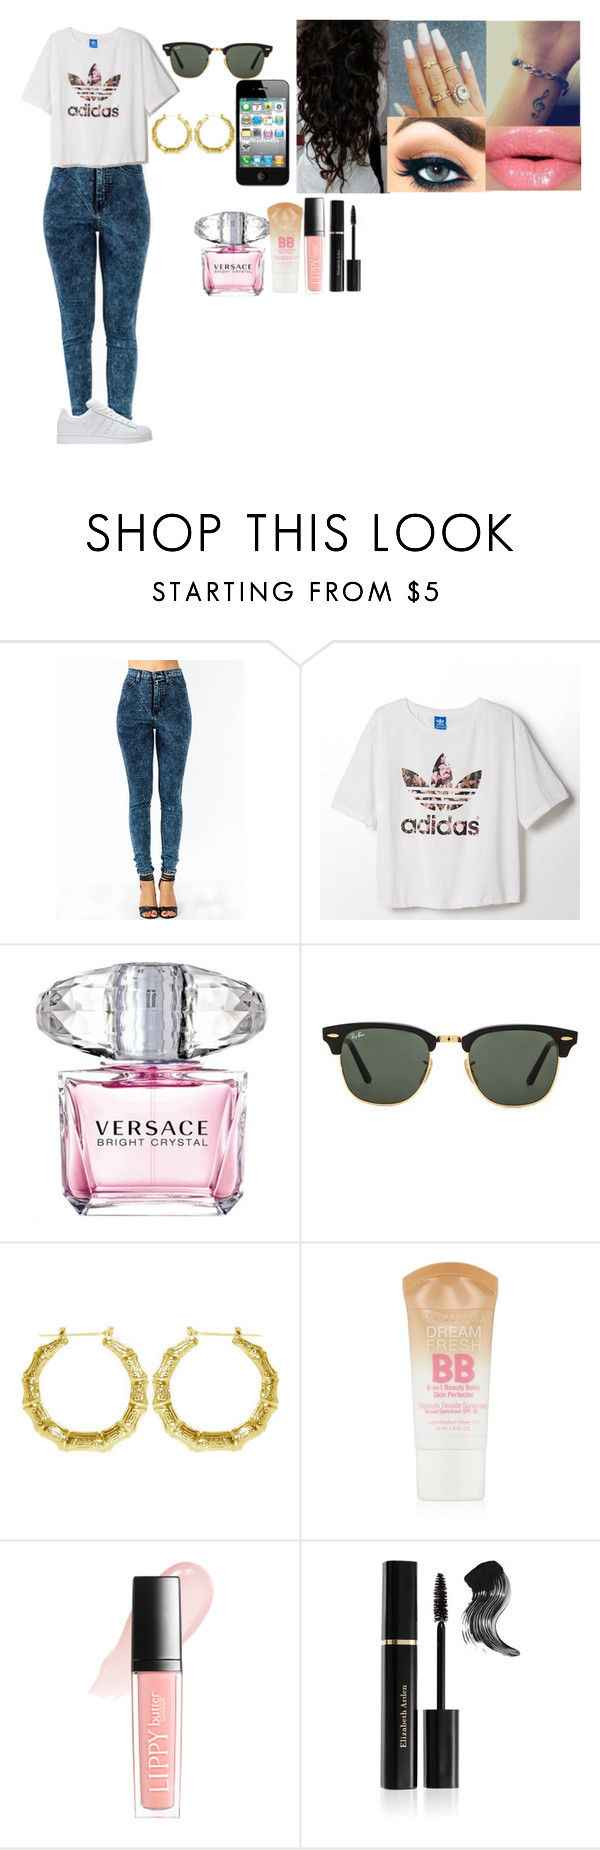 """""""O.O.T.D No.3"""" by janiahmurray ❤ liked on Polyvore featuring adidas, Retrò, Versace, Ray-Ban, Maybelline, Butter London and Elizabeth Arden"""